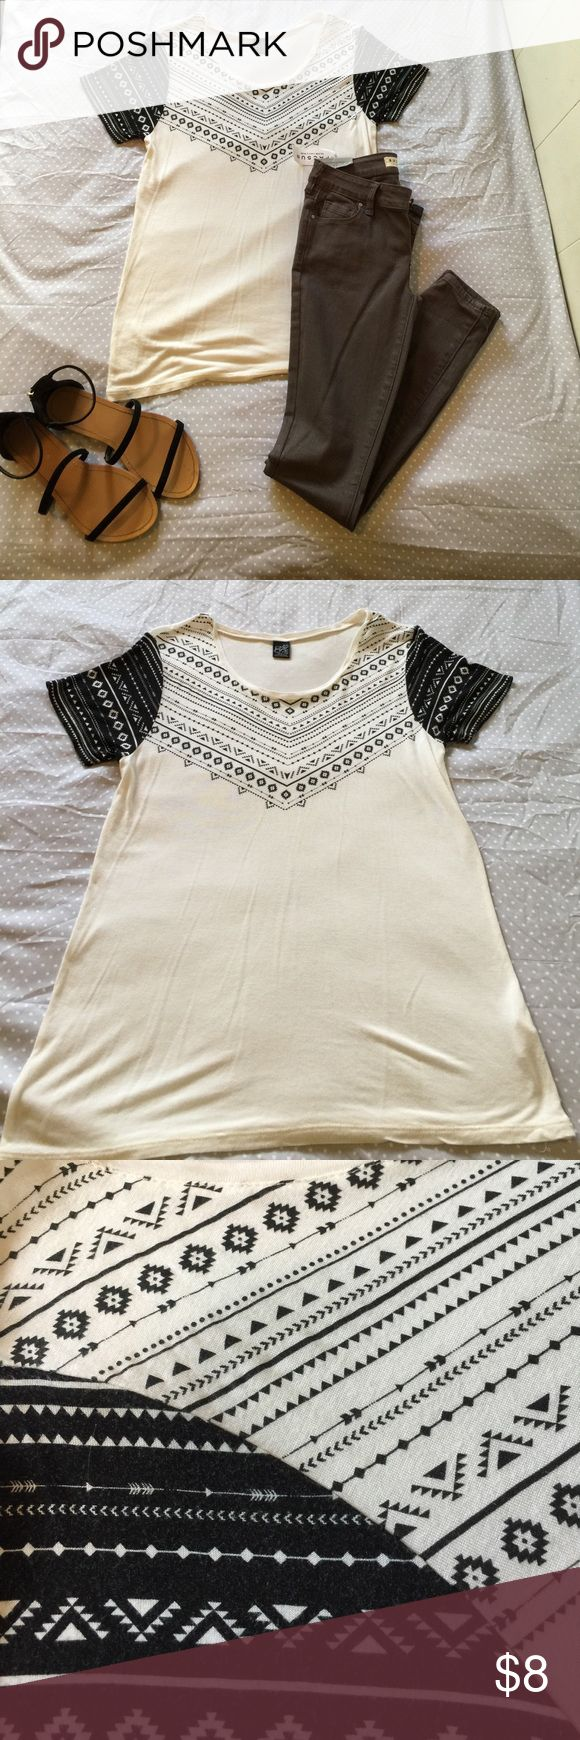 Women's  size small Empyre T-Shirt. Loose fitting women's/Juniors size small Empyre T-shirt black and white Aztec design. ***Selling SHIRT ONLY*** empyre Tops Tees - Short Sleeve